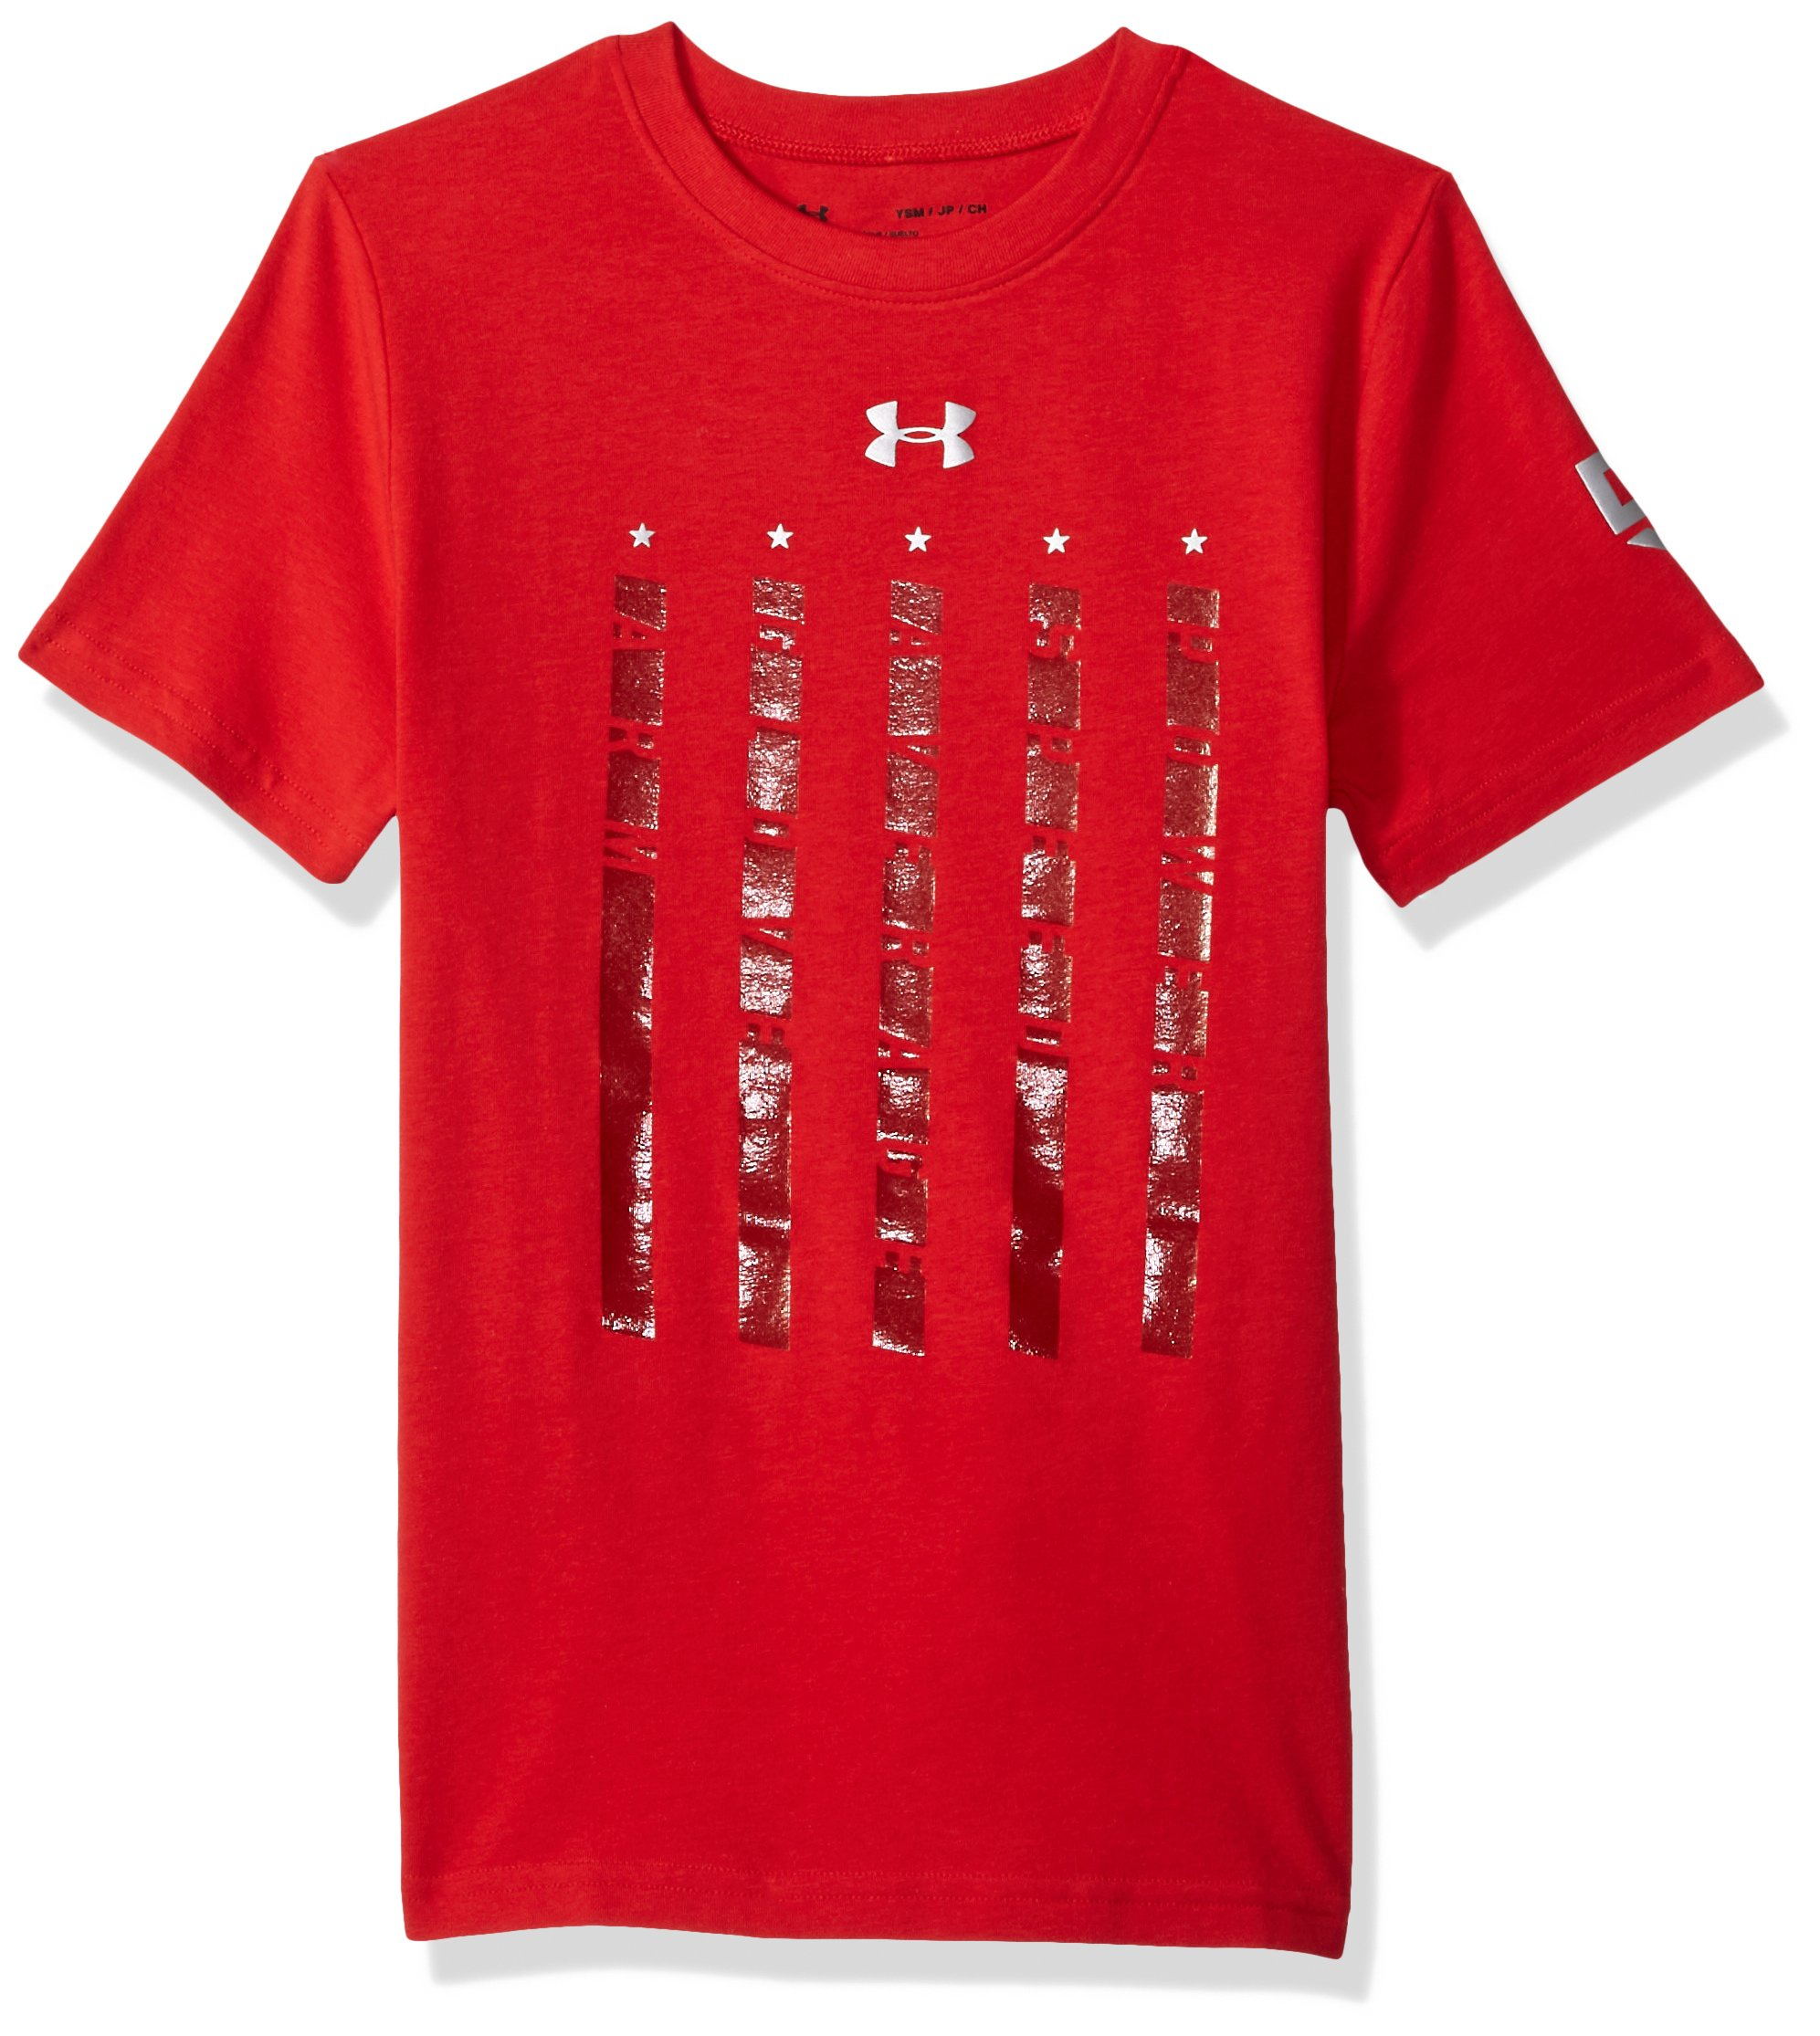 Under Armour Boys' Heater 5 Star T-Shirt,Red (600)/Metallic Silver, Youth Small